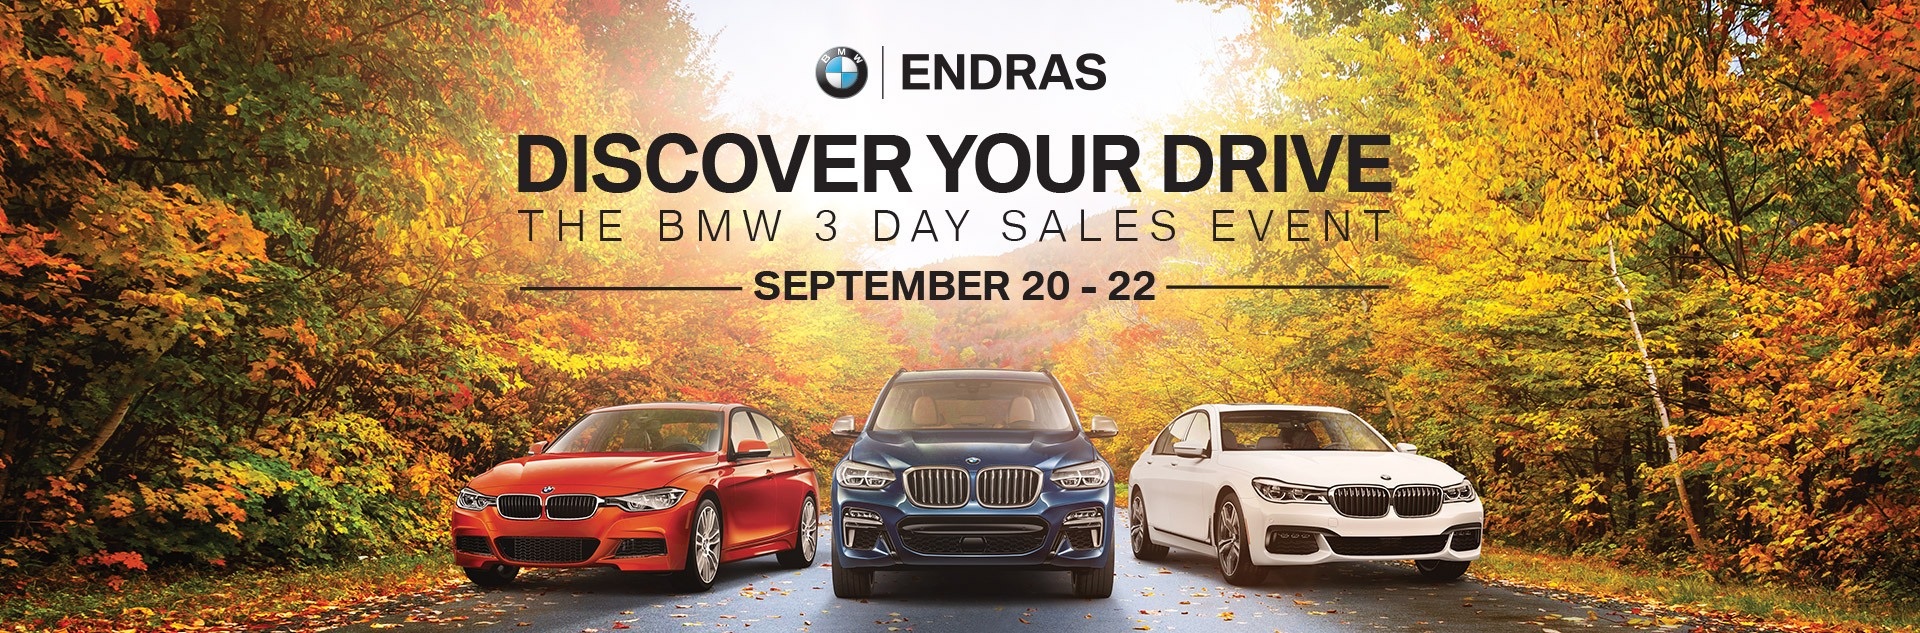 BMW 3-Day Sale at Endras BMW - Private Sale September 20-22